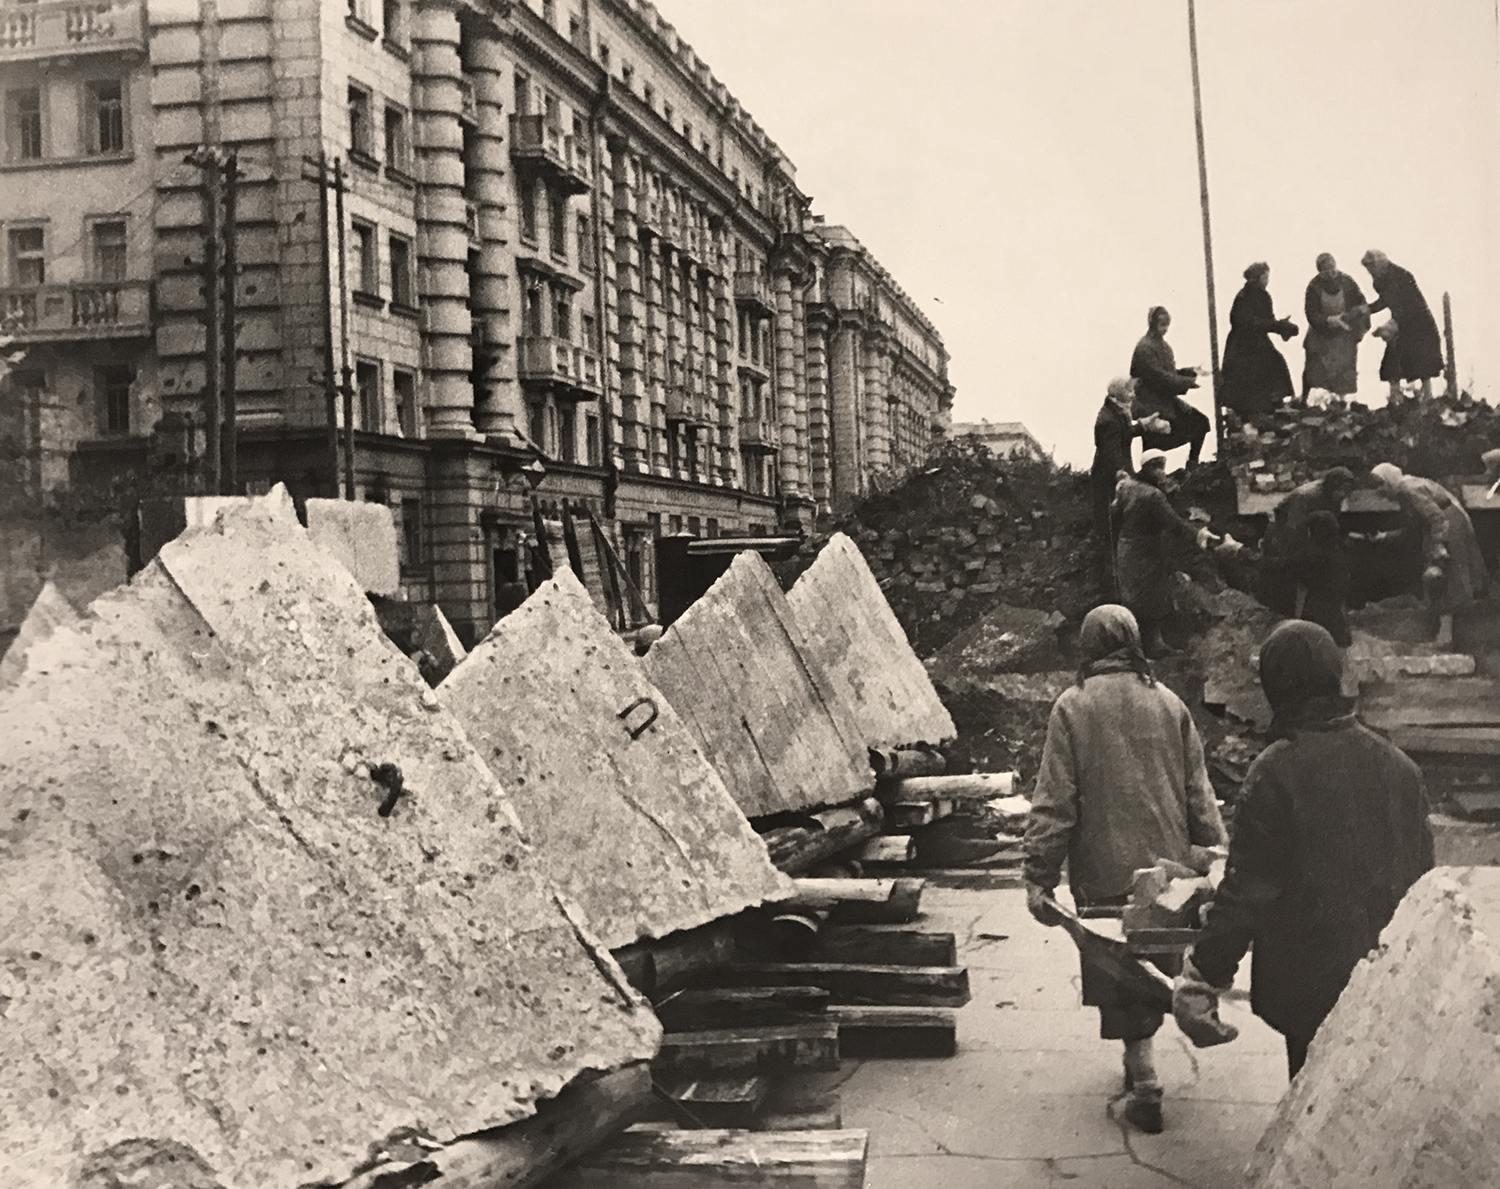 Boris Kudoyarov's photo of Leningrad under Siege during WWII